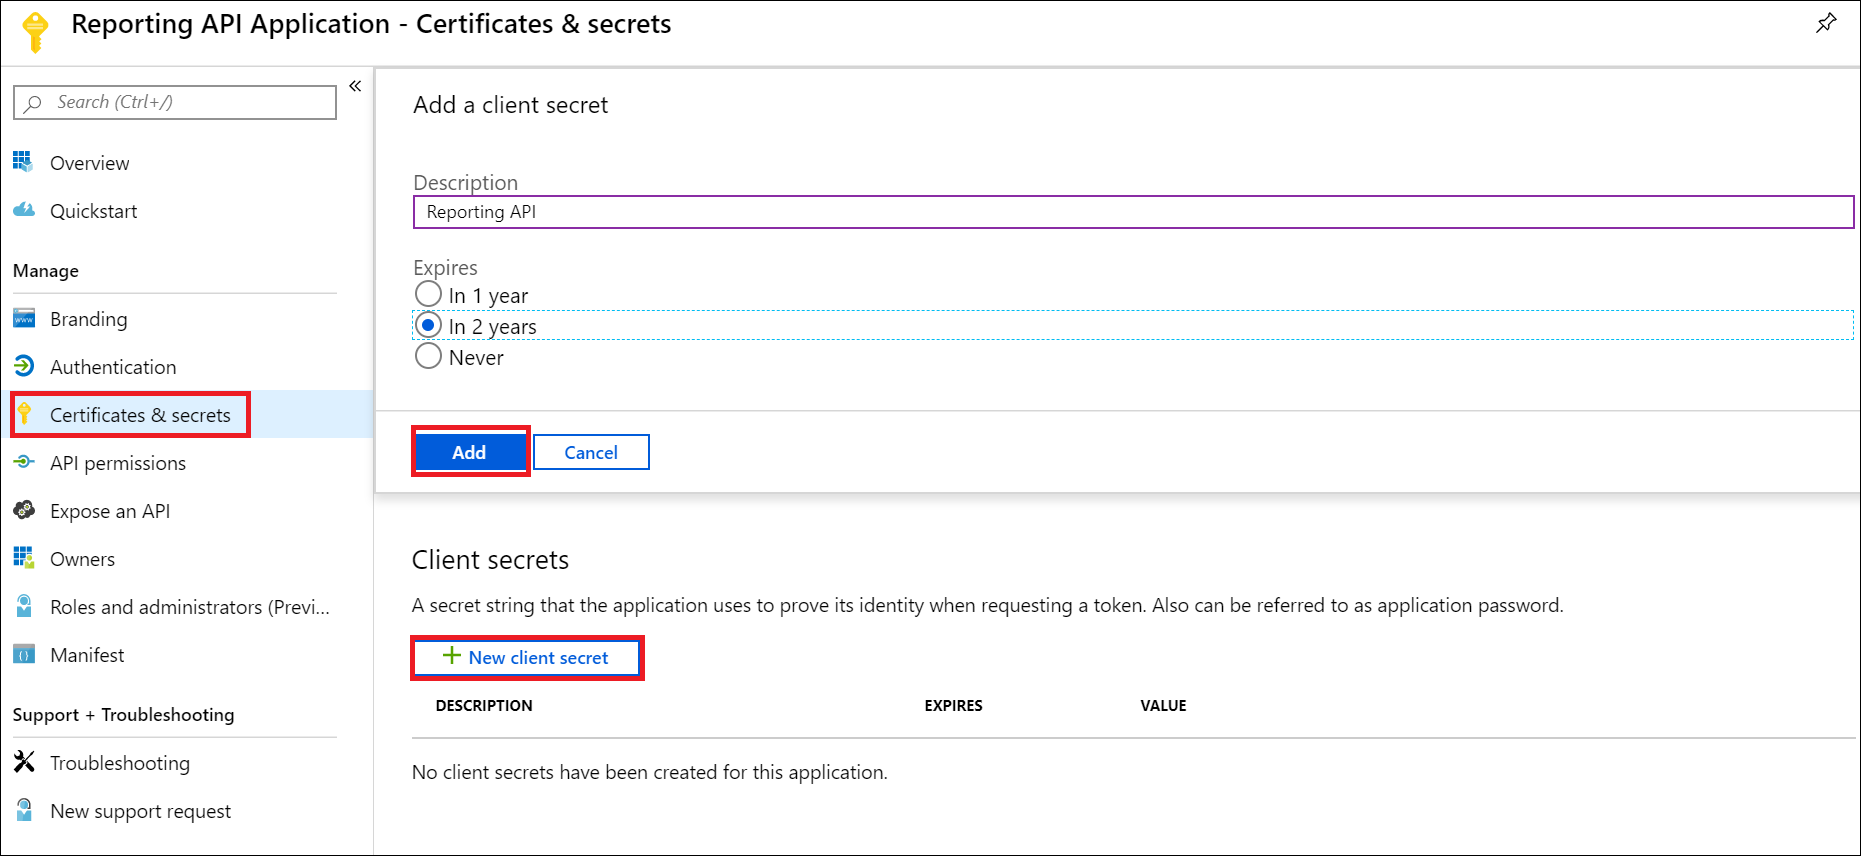 Screenshot shows the Certificates & secrets page where you can add a client secret.